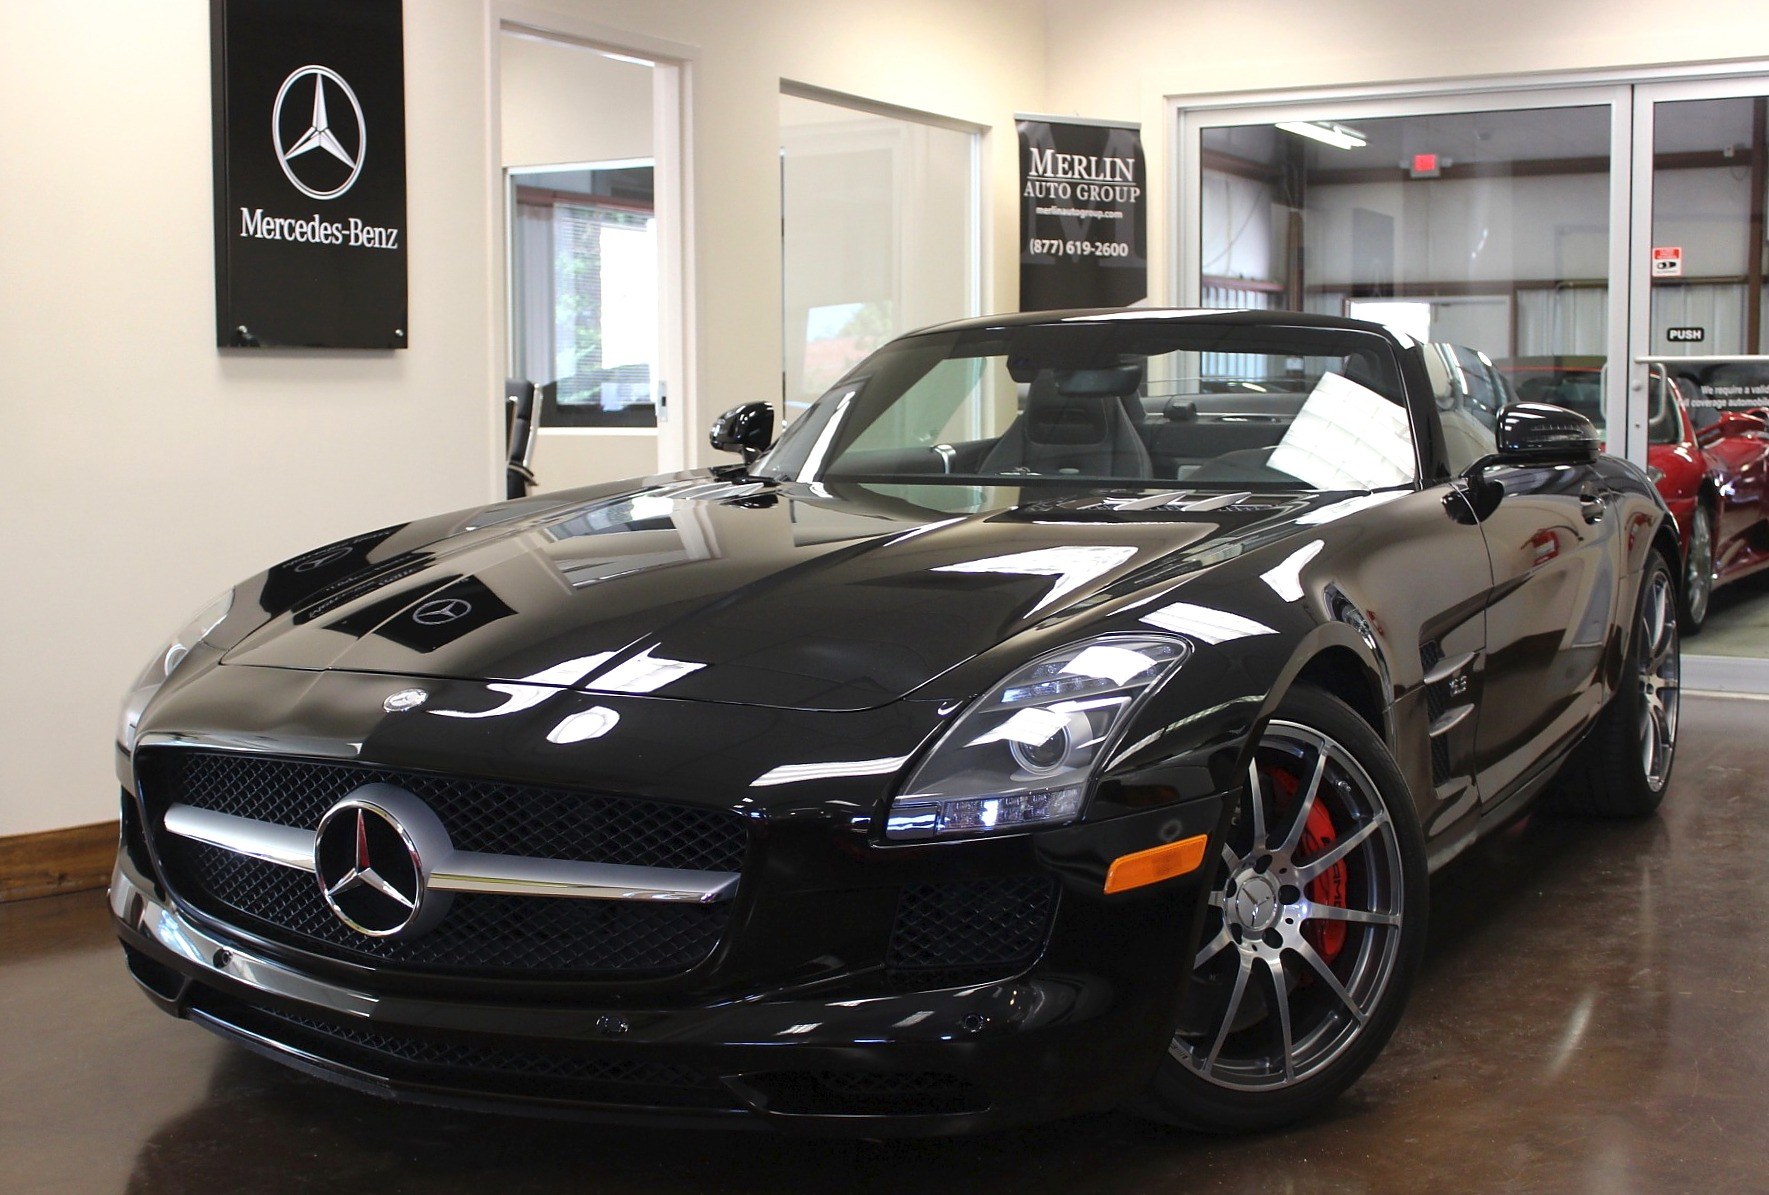 Used 2012 Mercedes Benz SLS stock P3050AA Ultra Luxury Car from